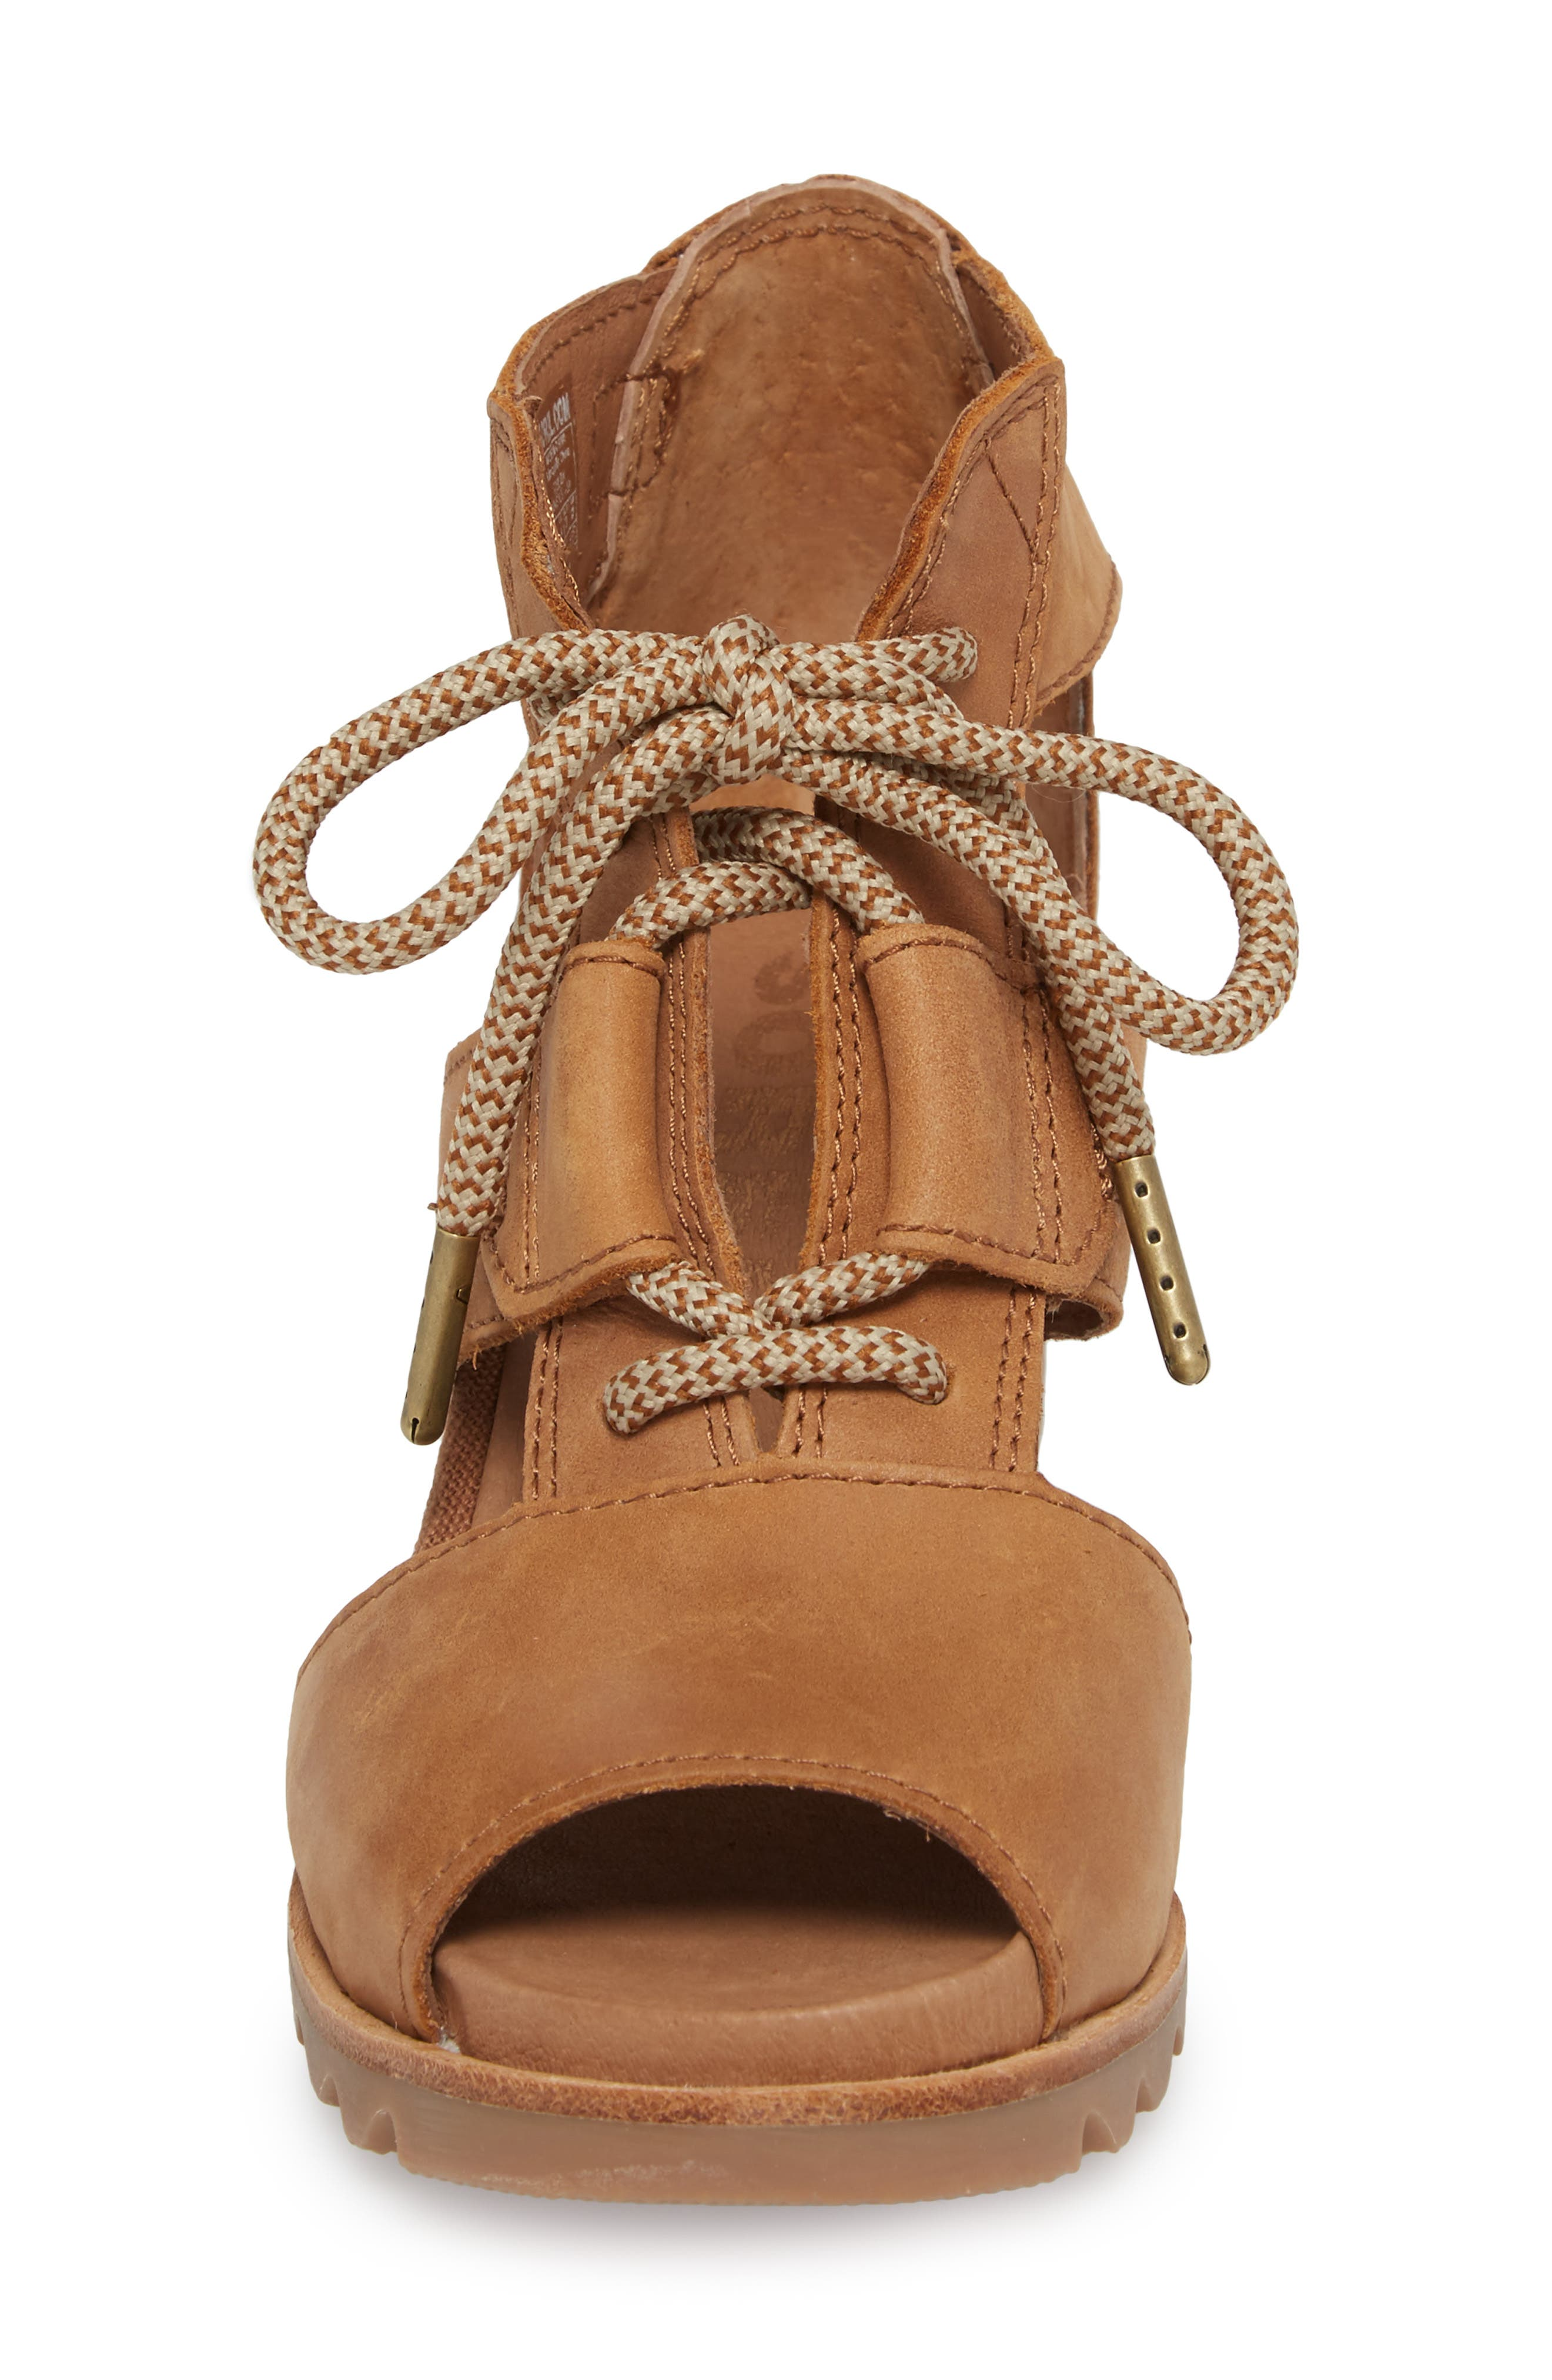 'Joanie' Cage Sandal,                             Alternate thumbnail 3, color,                             Camel Brown